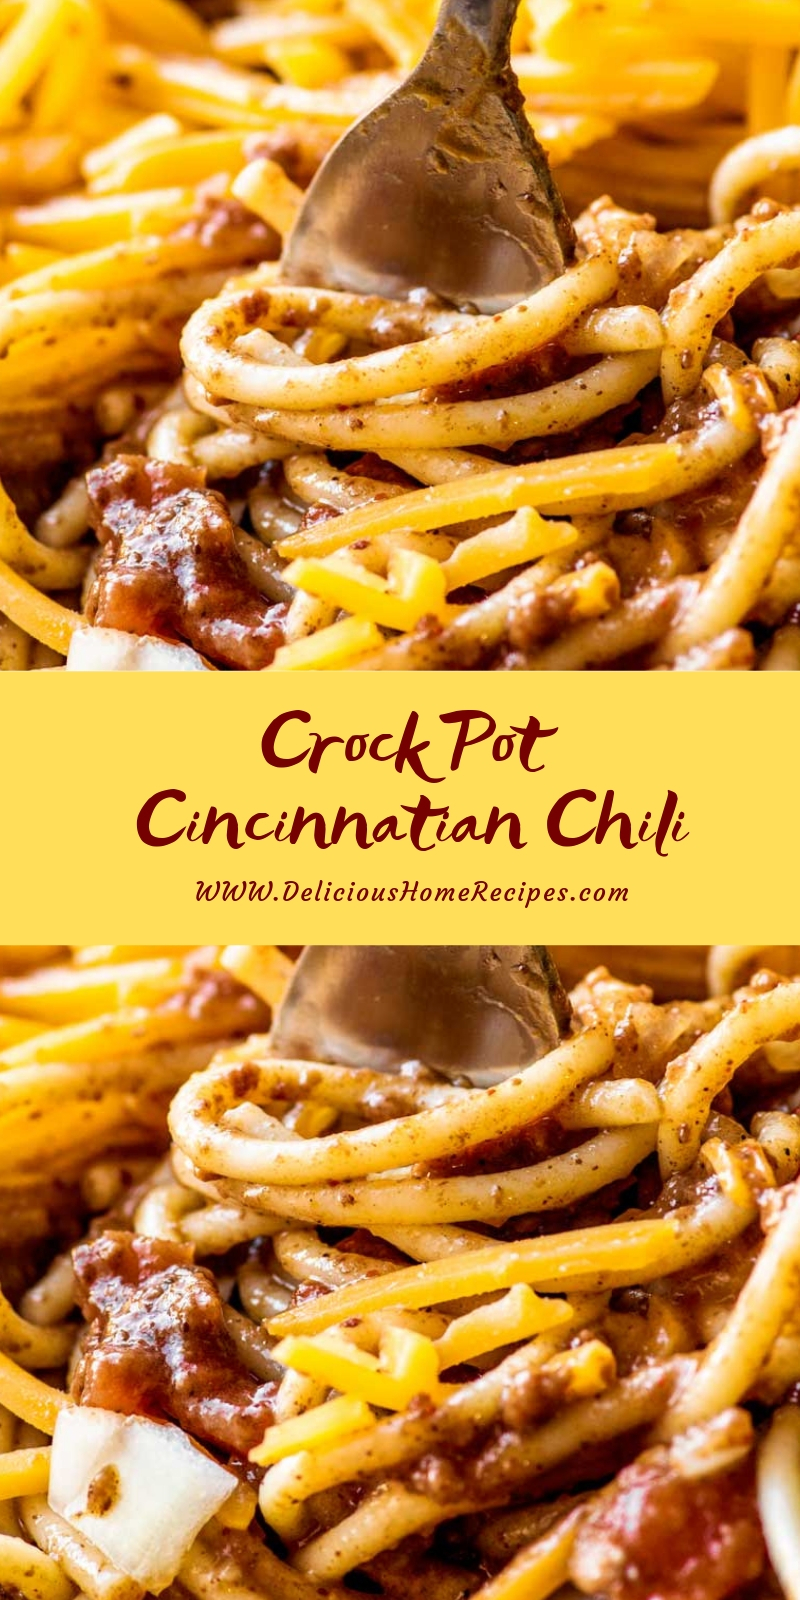 Crock Pot Cincinnatian Chili